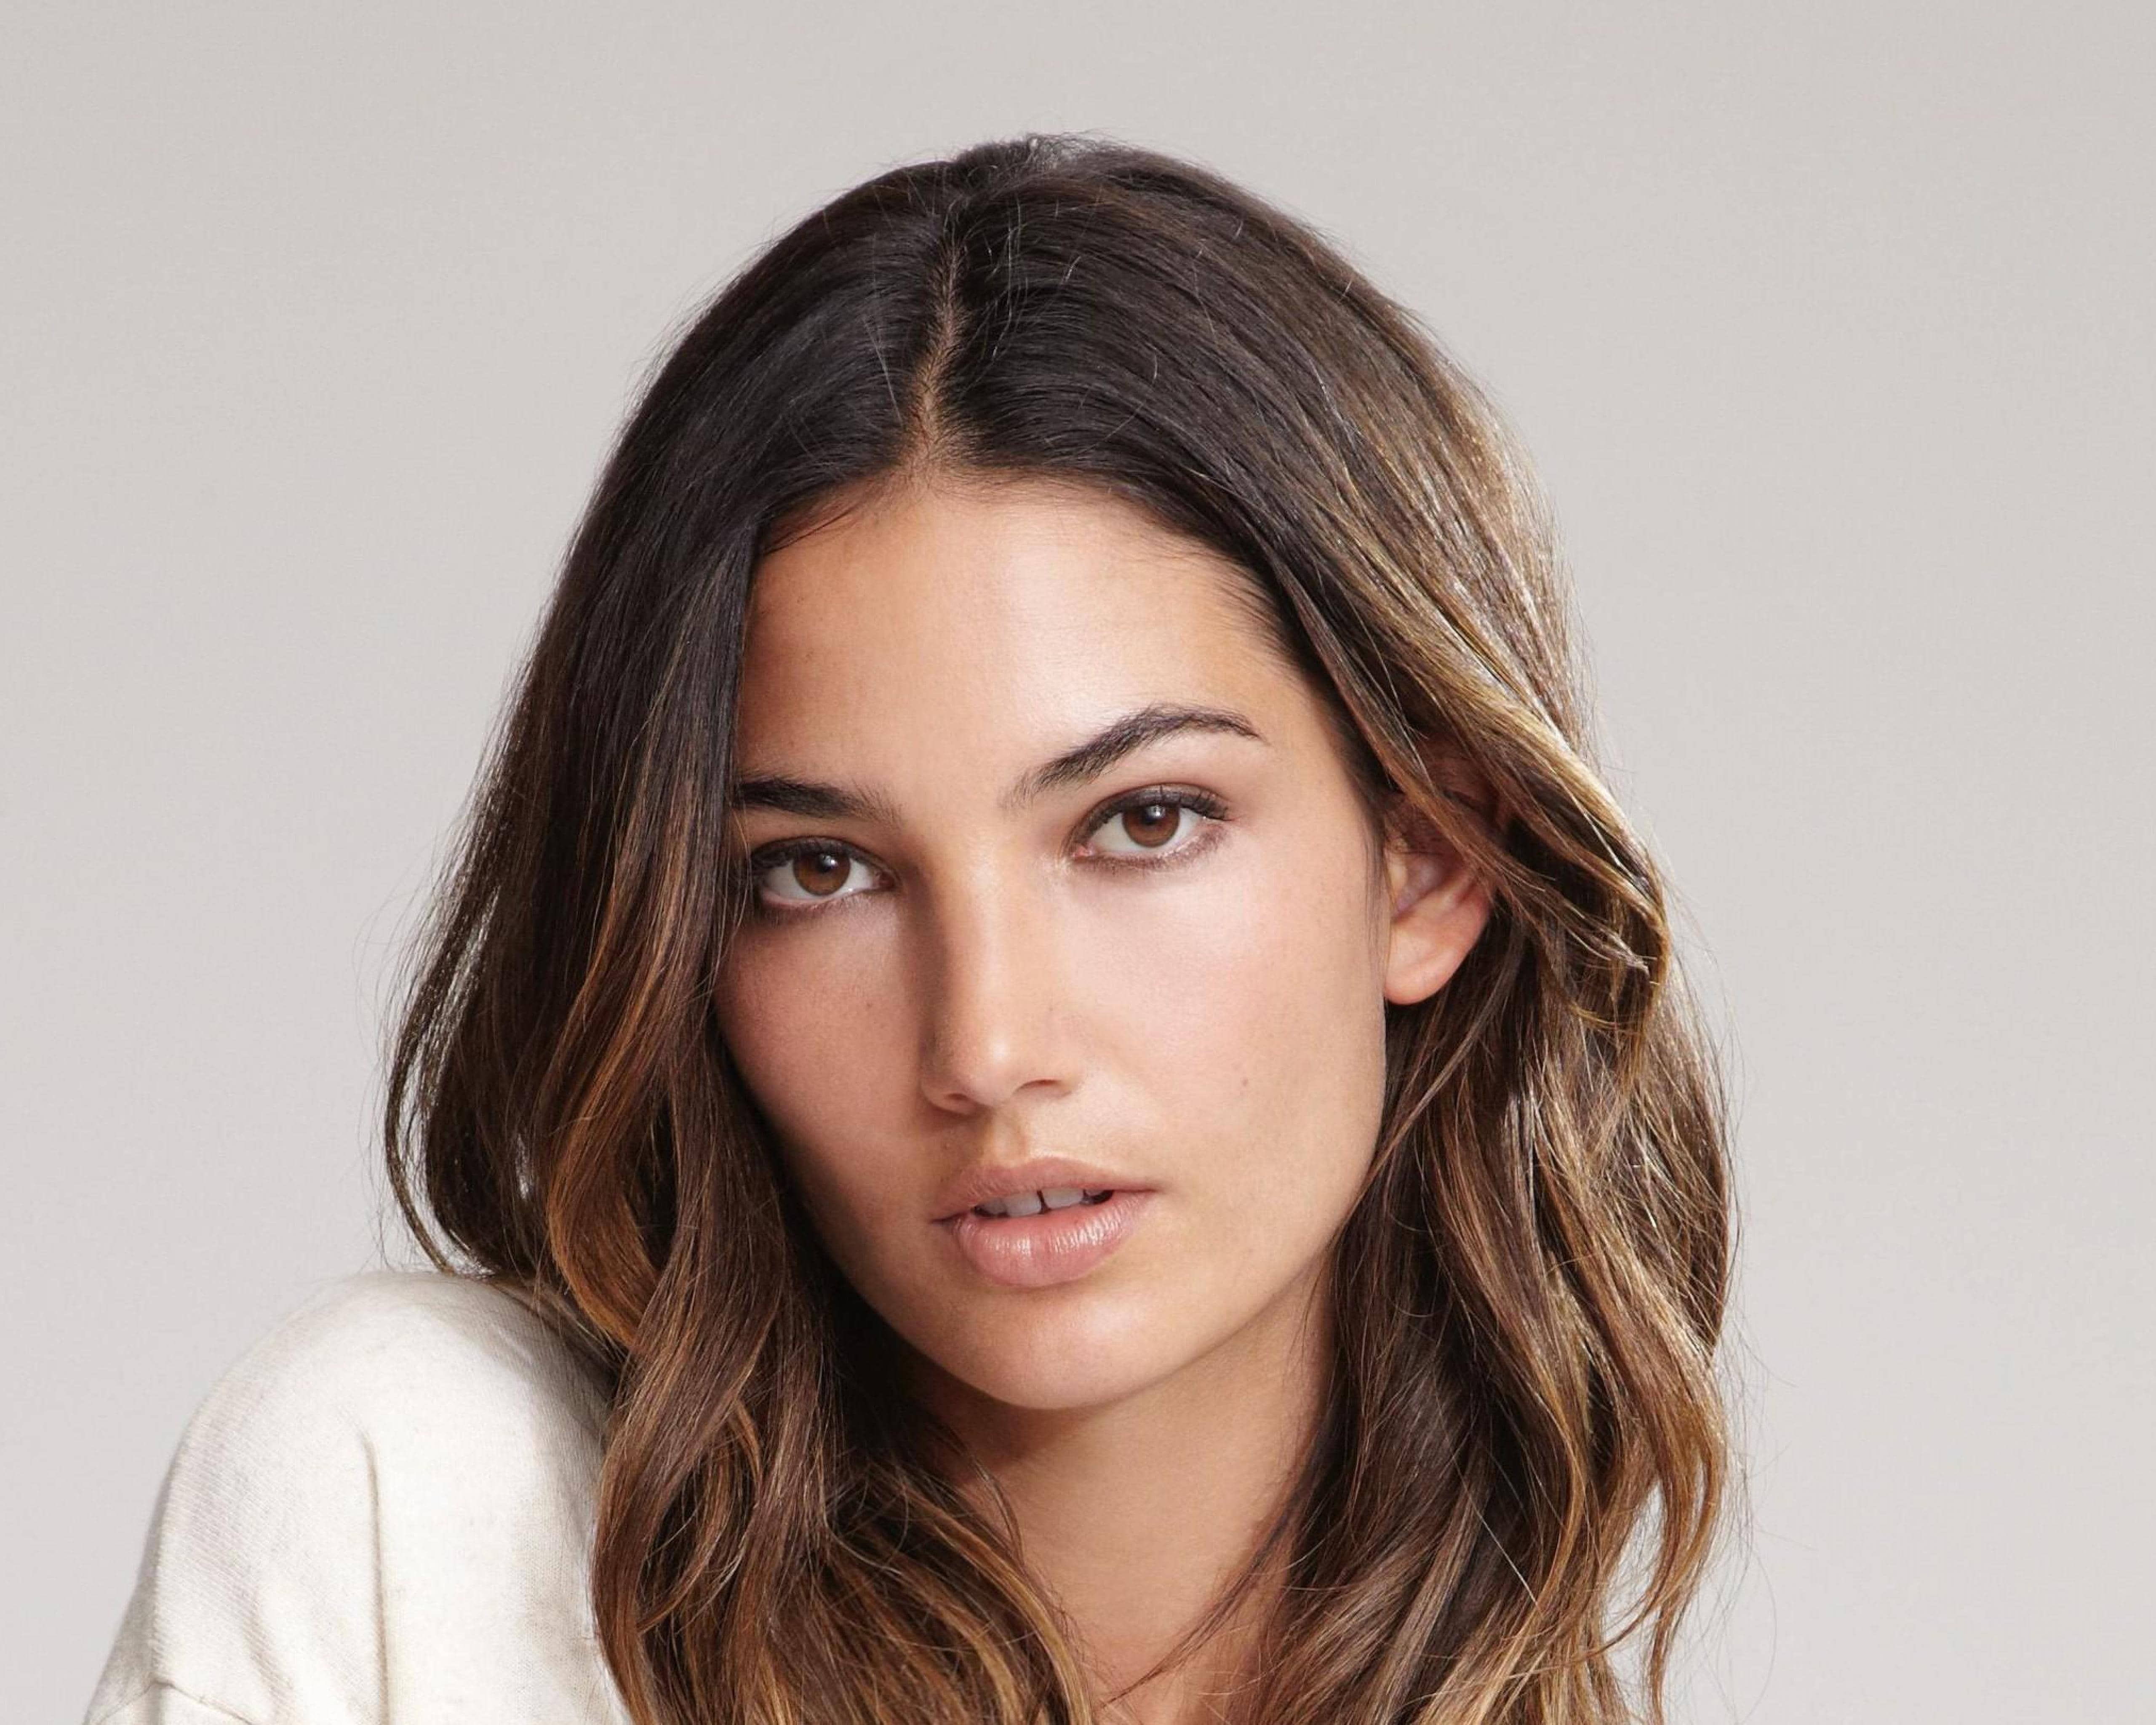 Lily Aldridge Full hd wallpapers